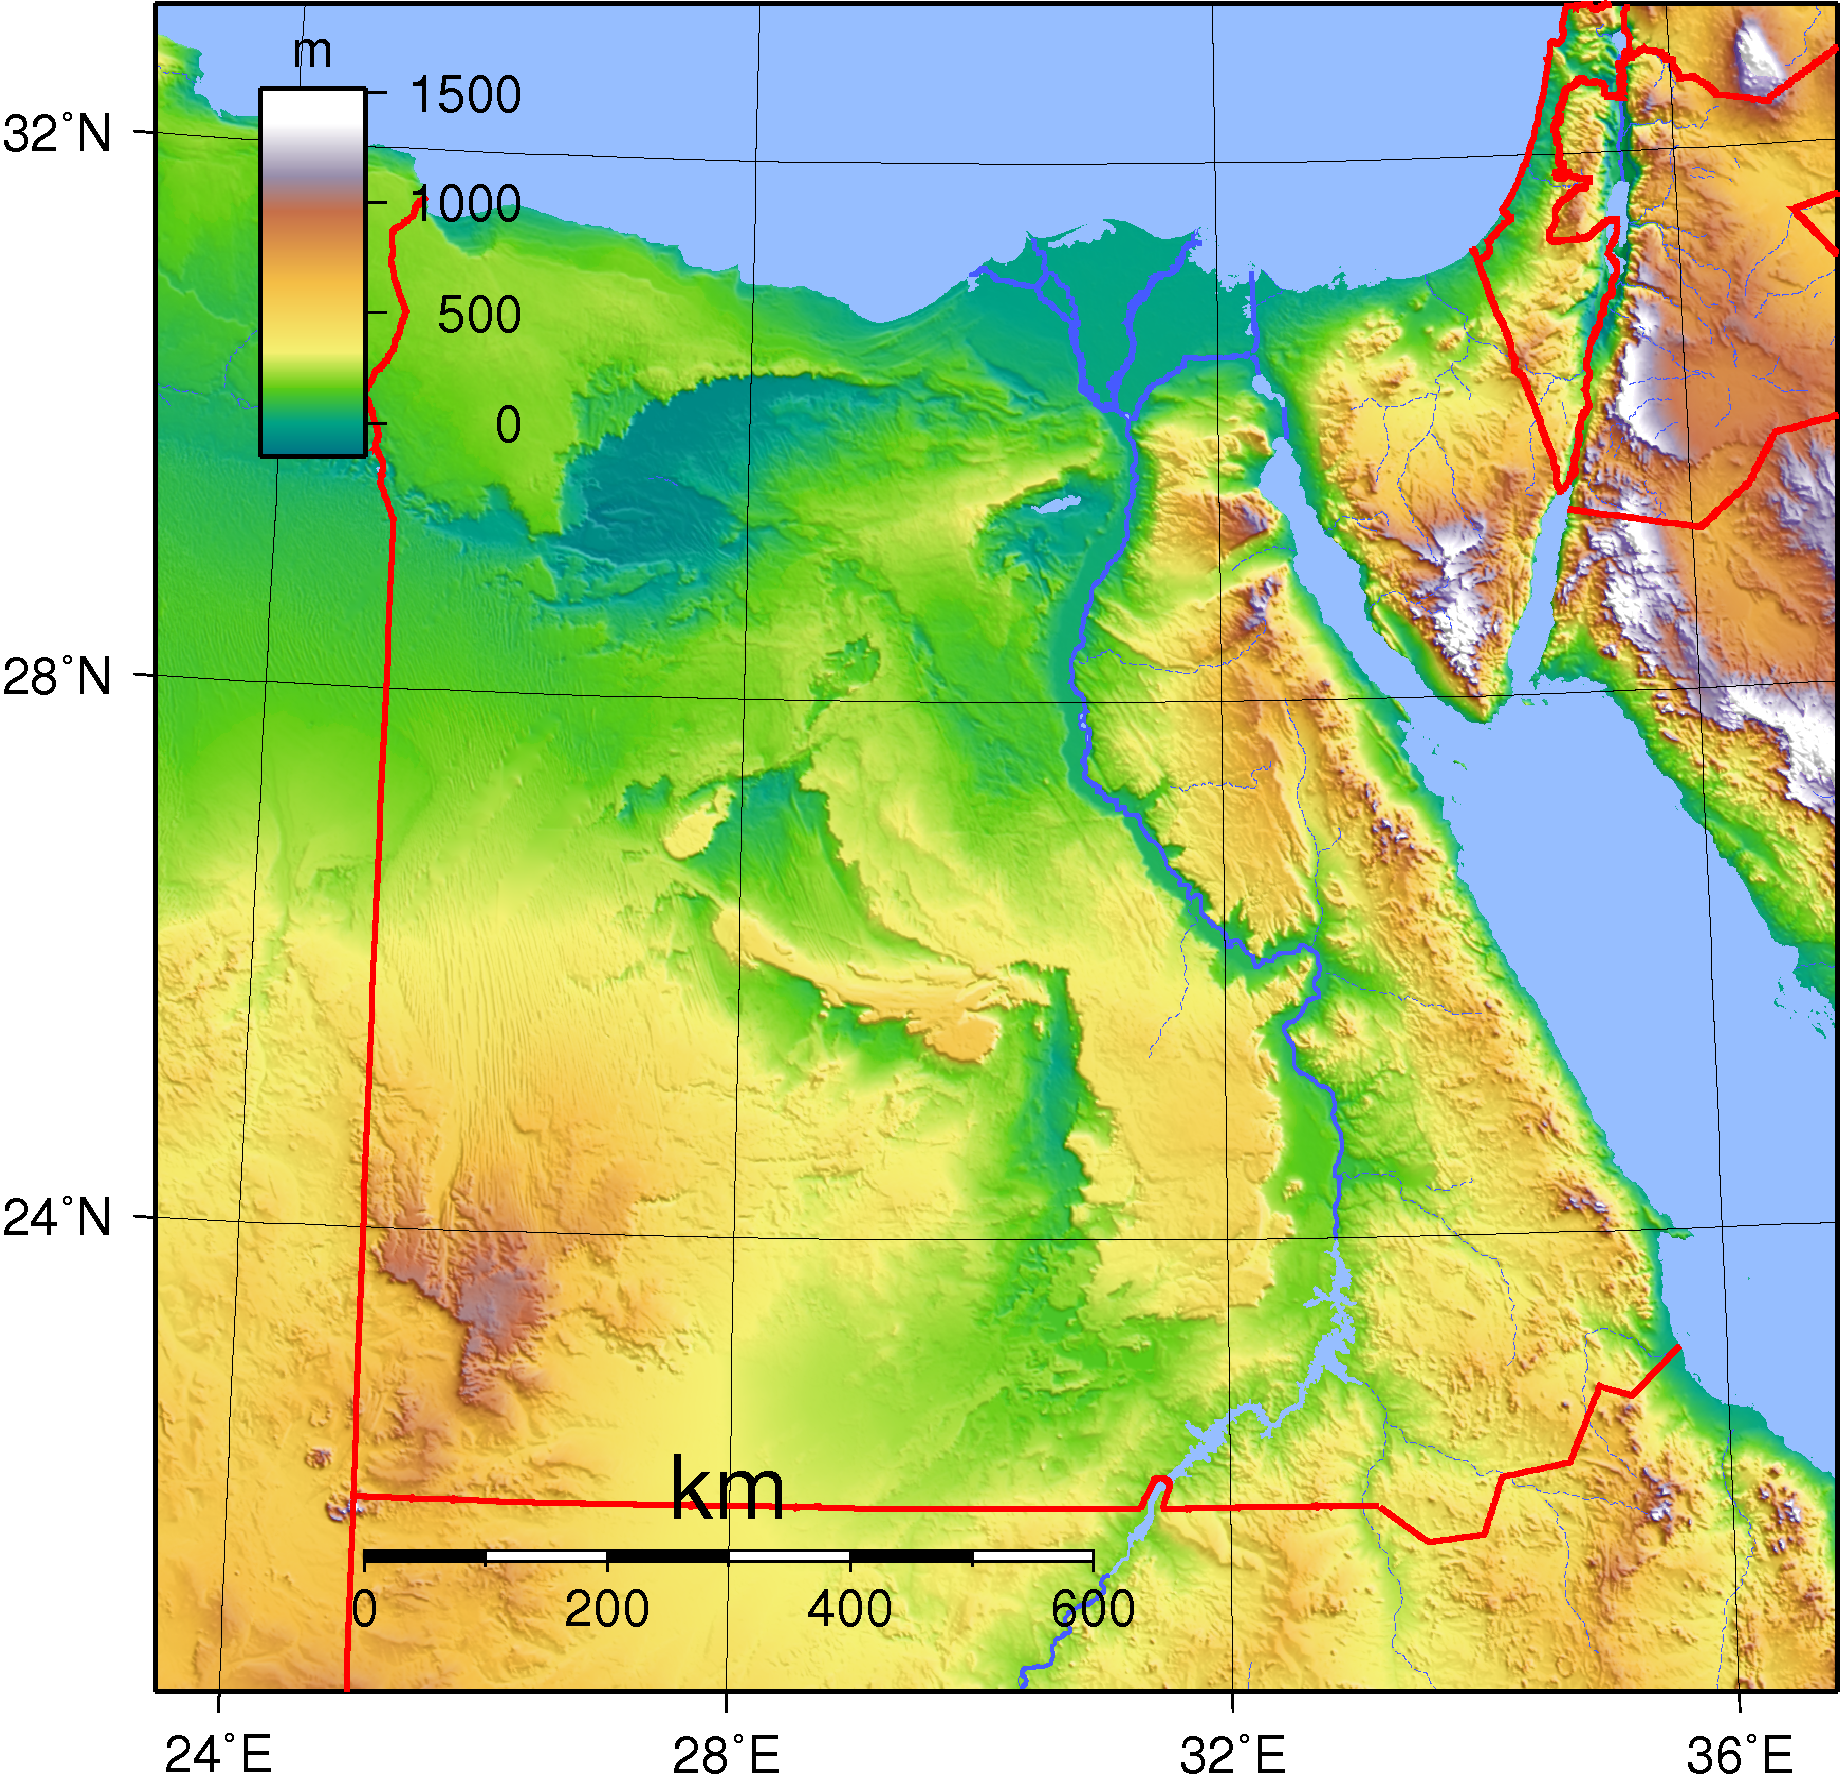 FileTopographic Map Of Egypt Png The Work Of Gods Children - Map of egypt elevation